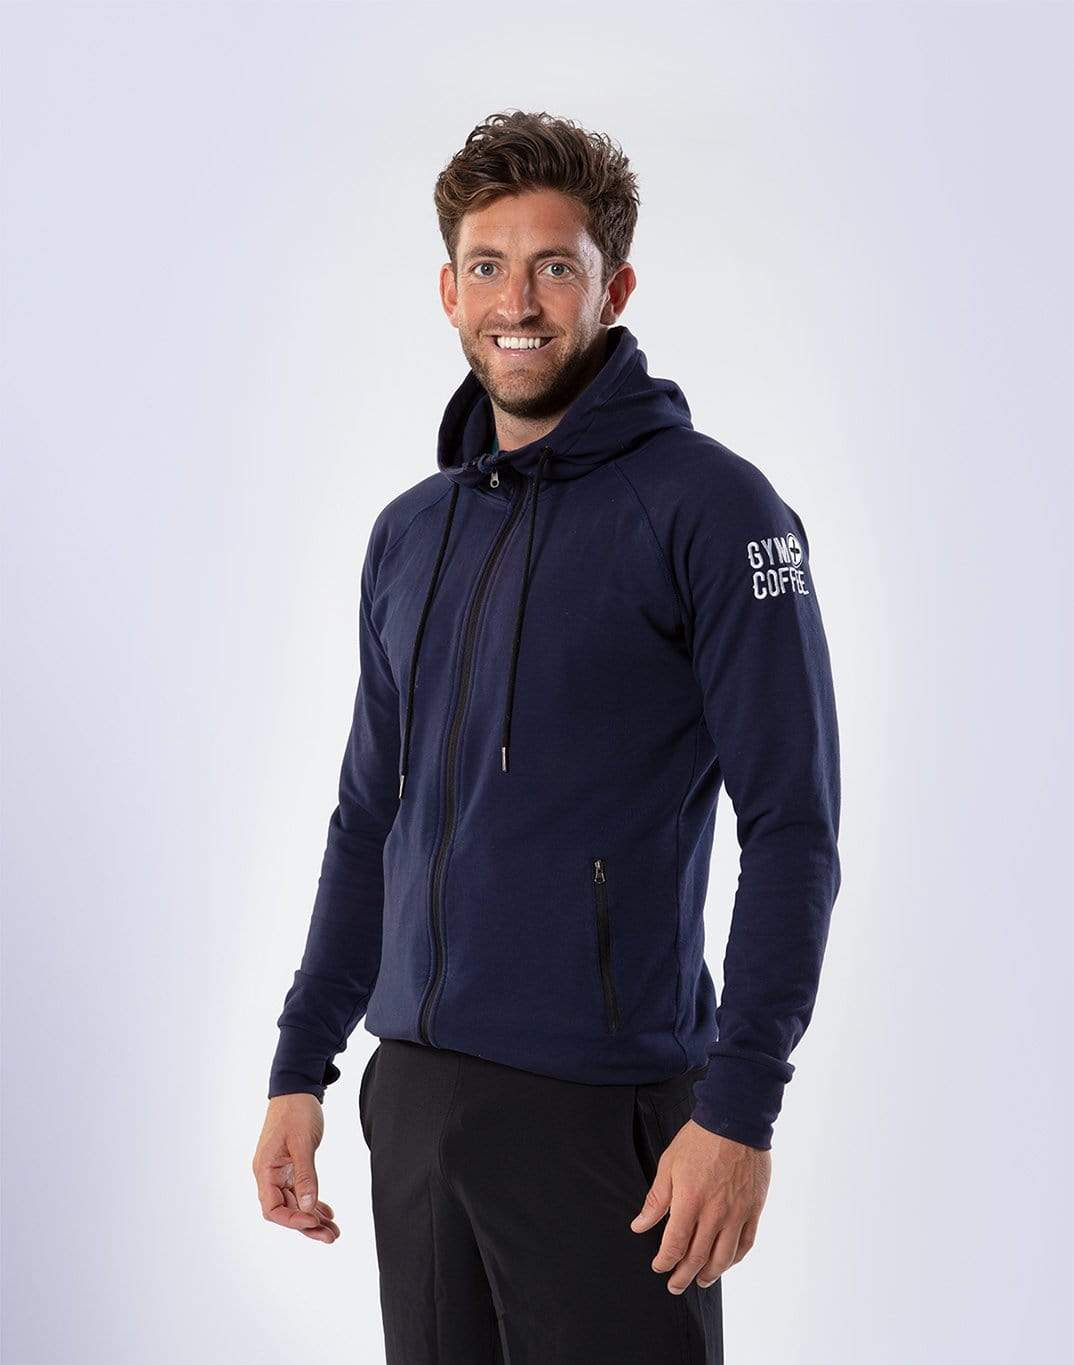 Gym Plus Coffee Hoodie Men's Midnight Navy Hoodie Designed in Ireland